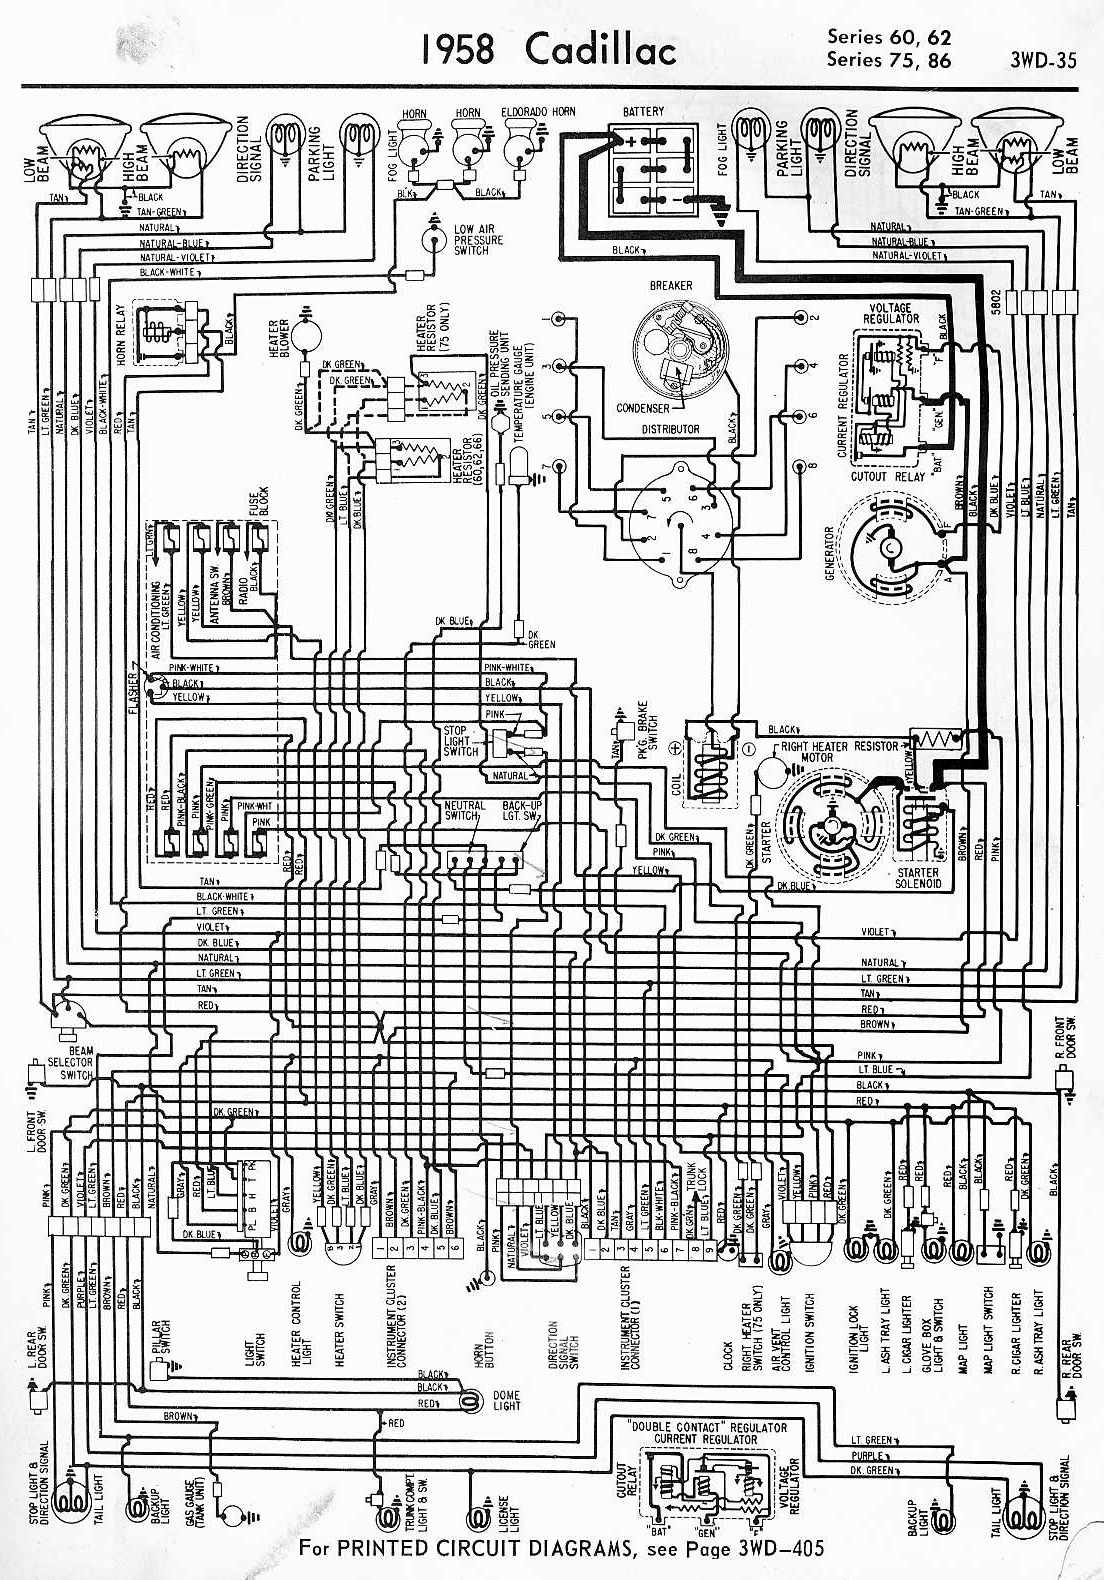 wiring harness for 1961 imperial wiring diagram schematics 1965 cadillac deville wiring diagram 1954 cadillac wiring diagrams